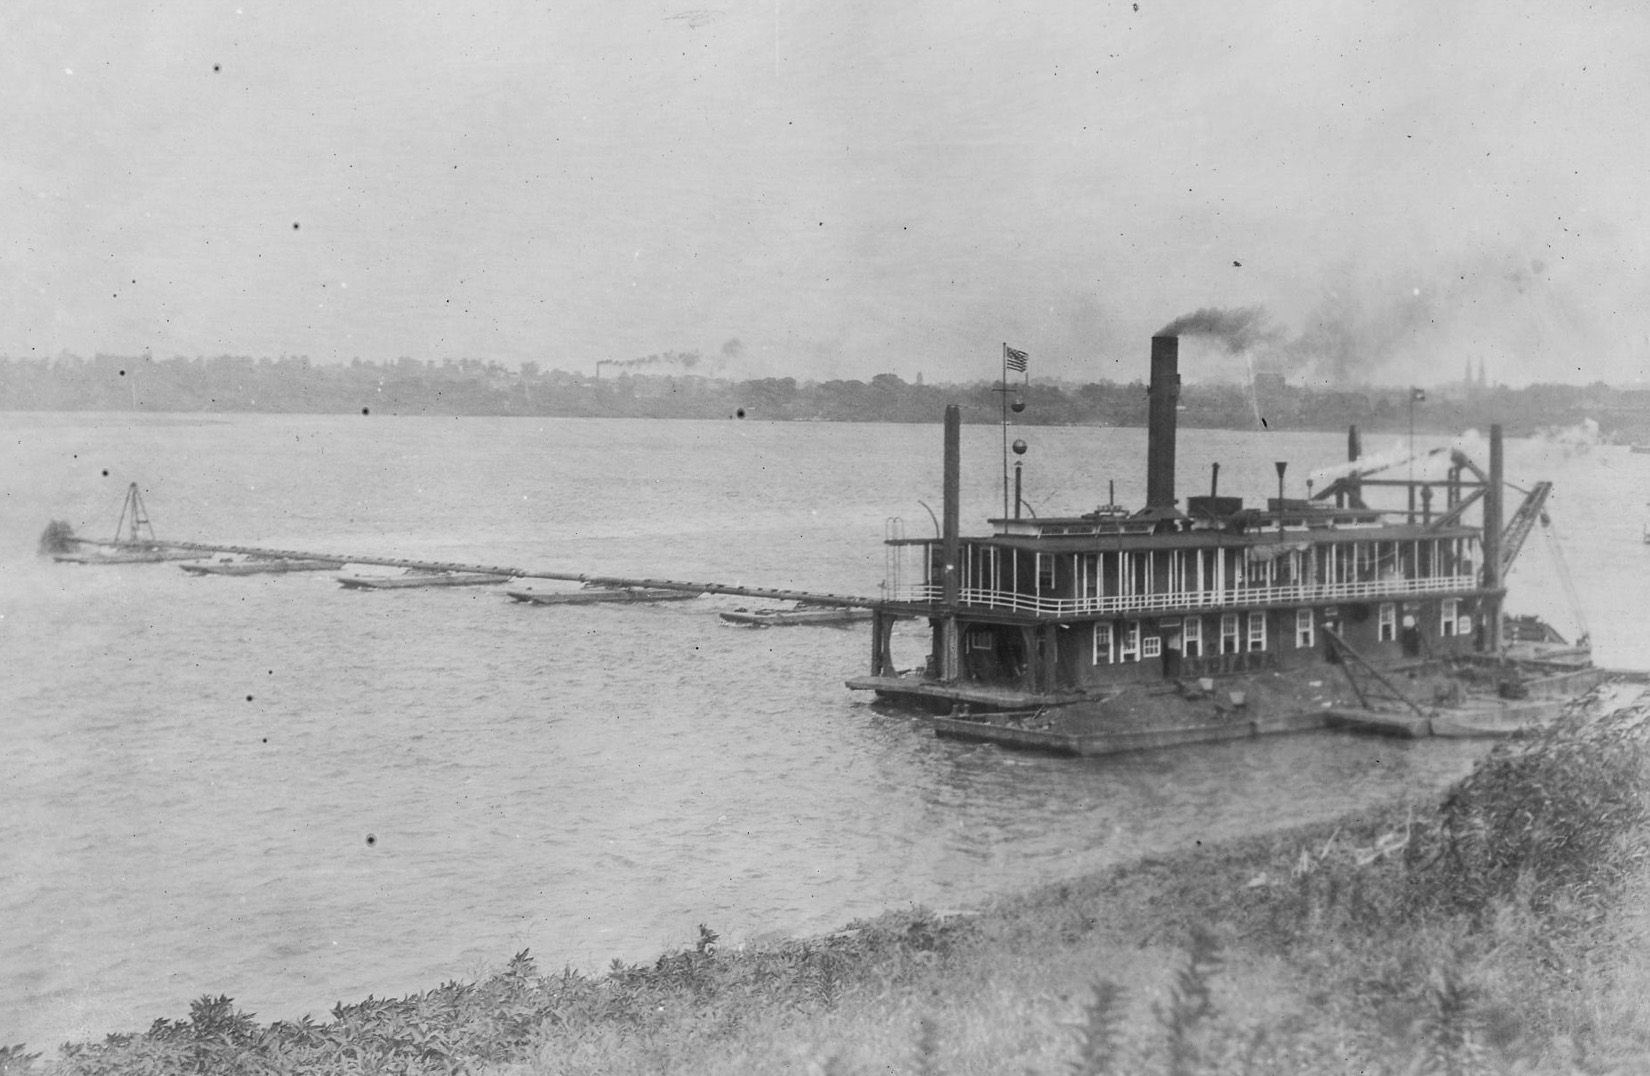 A Dredge Along The Bank Of The Ohio River Near Evansville Indiana C 1900 In 1902 John Eigenman The Owner Of One Such Opera Evansville Ohio River Indiana